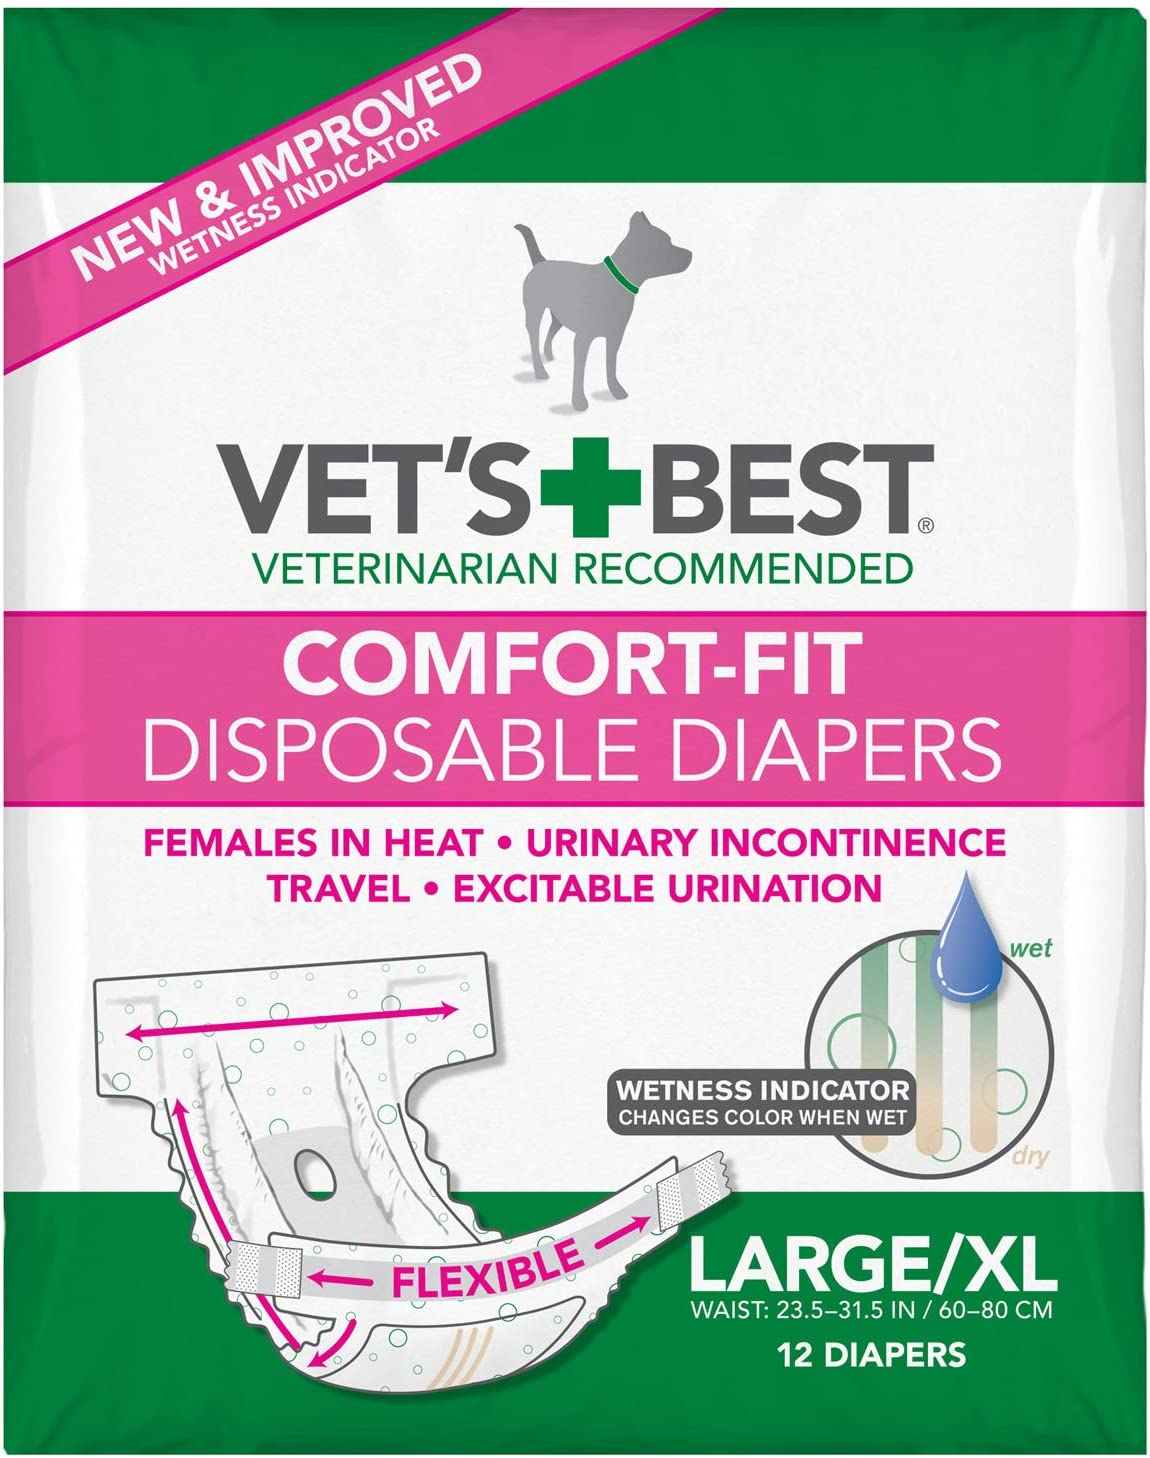 vets-best-disposable-diapers